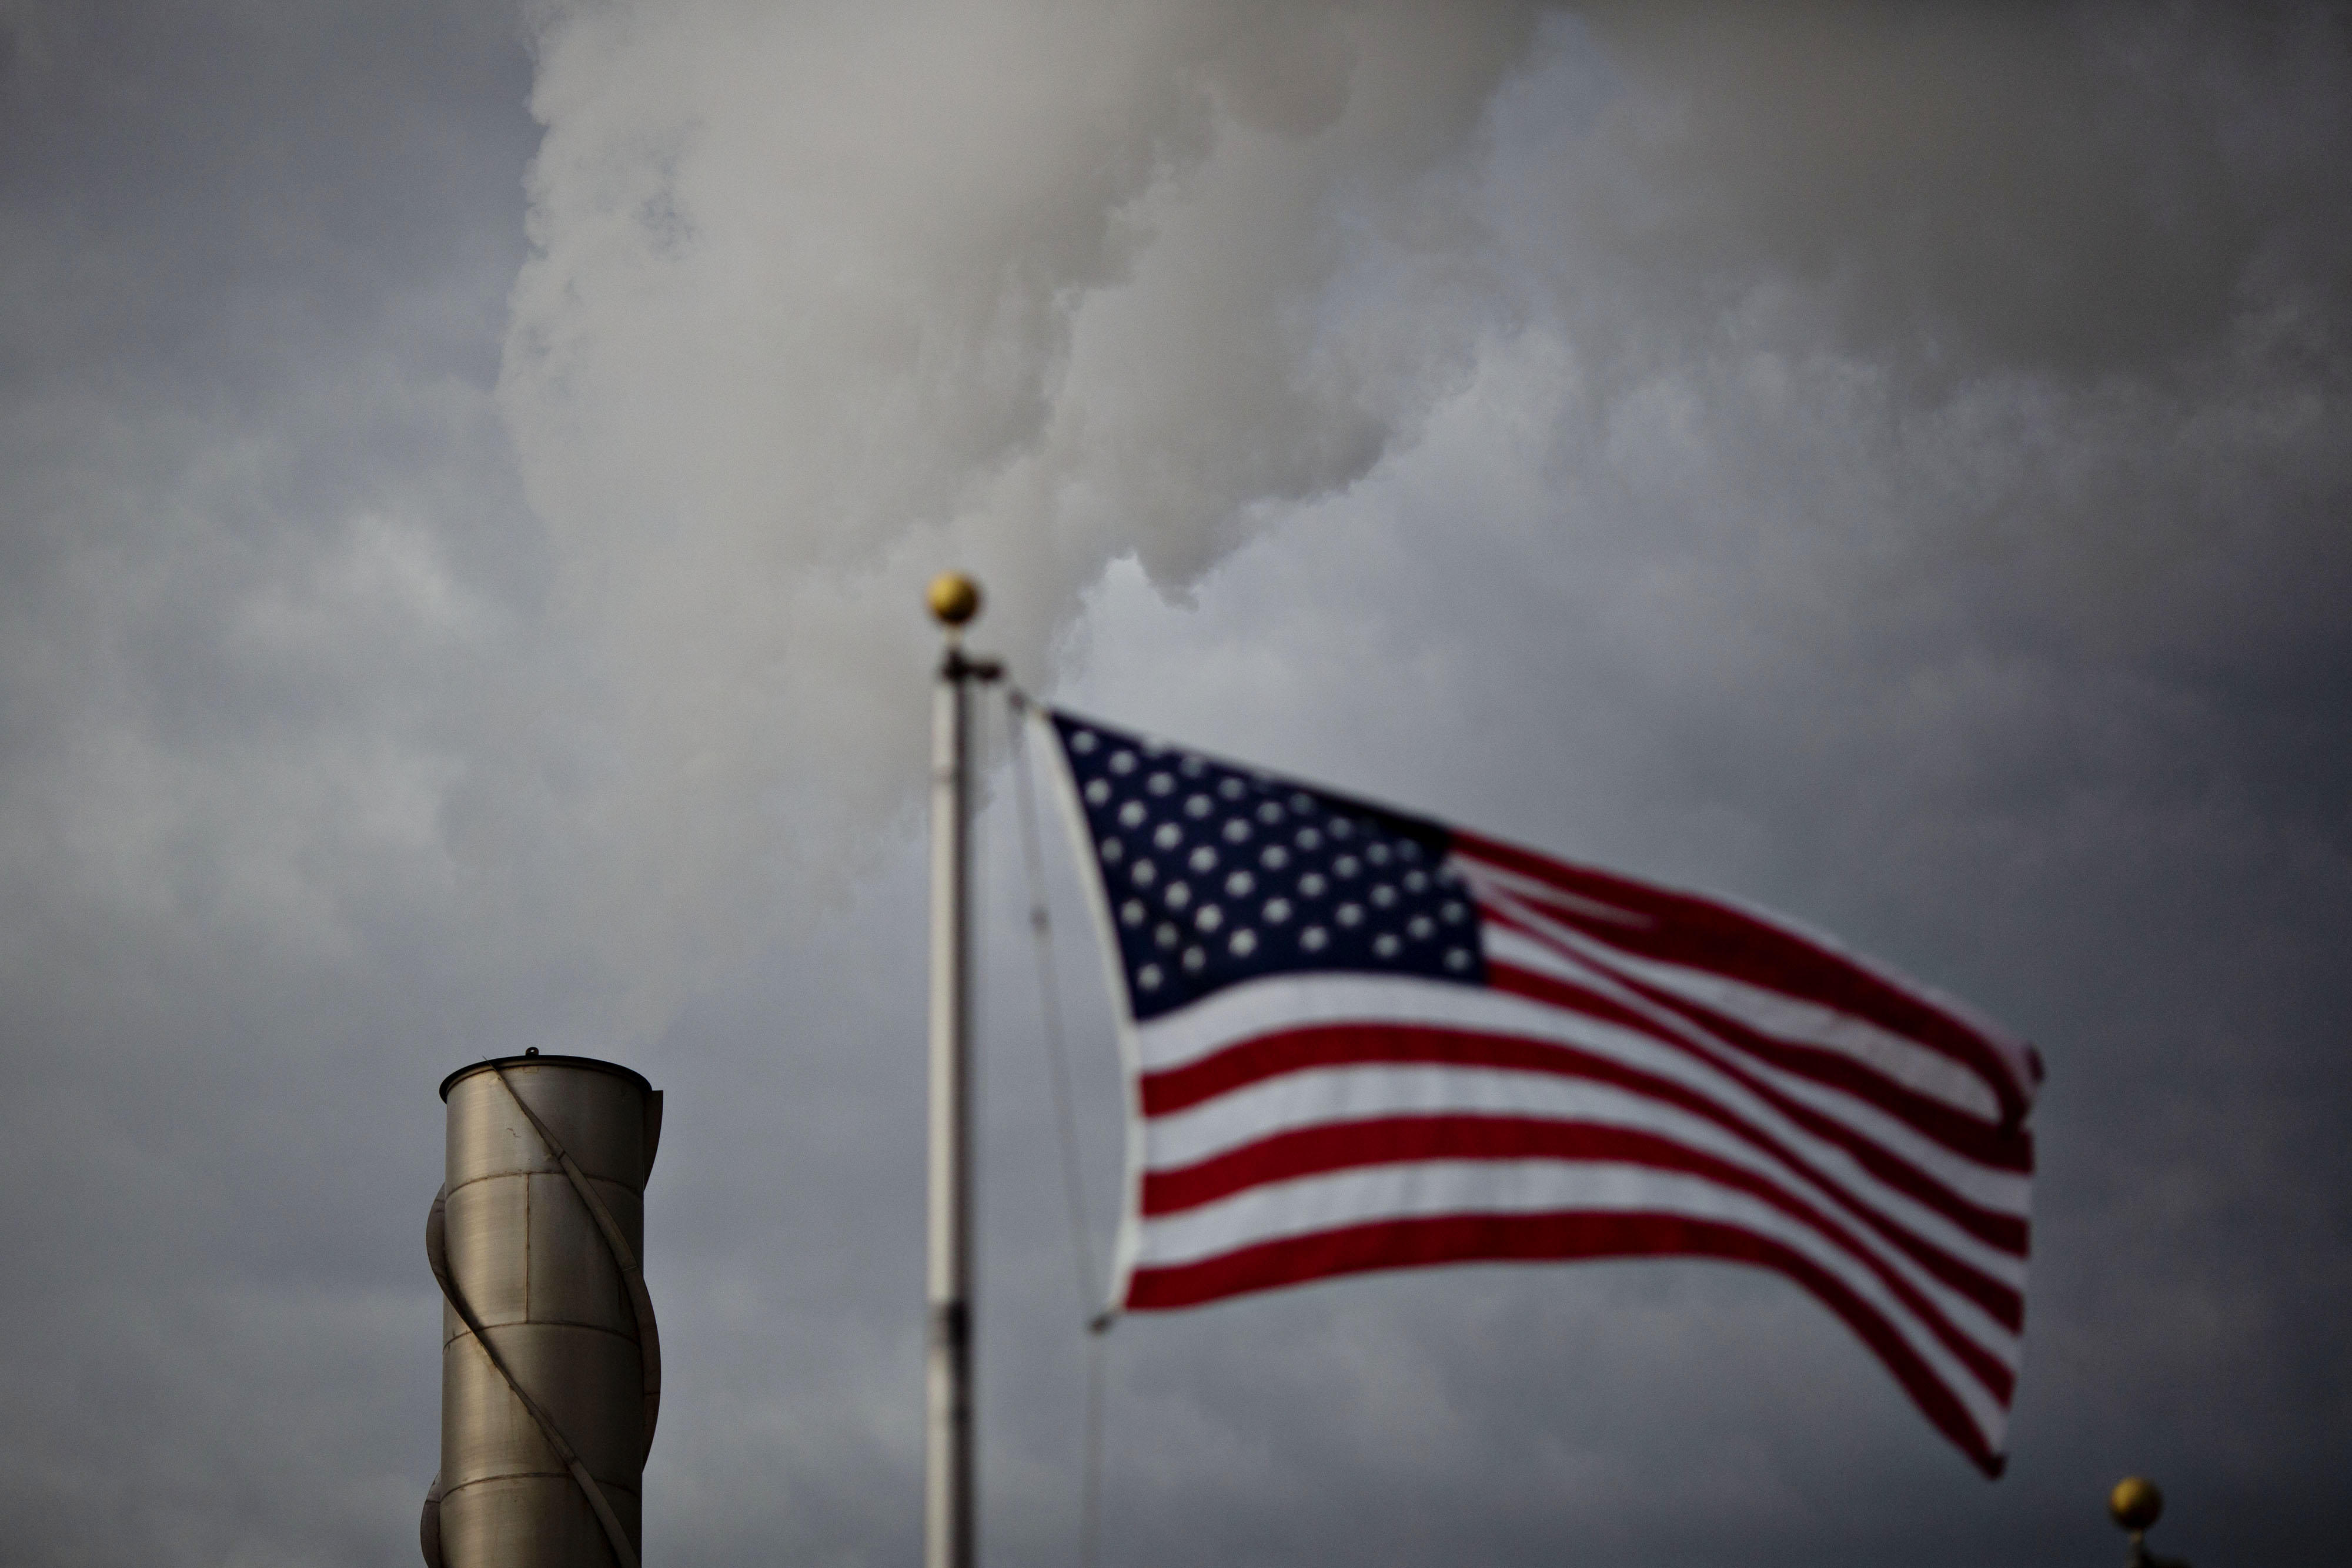 Steam rises from a stack outside an ethanol biorefinery in Iowa.